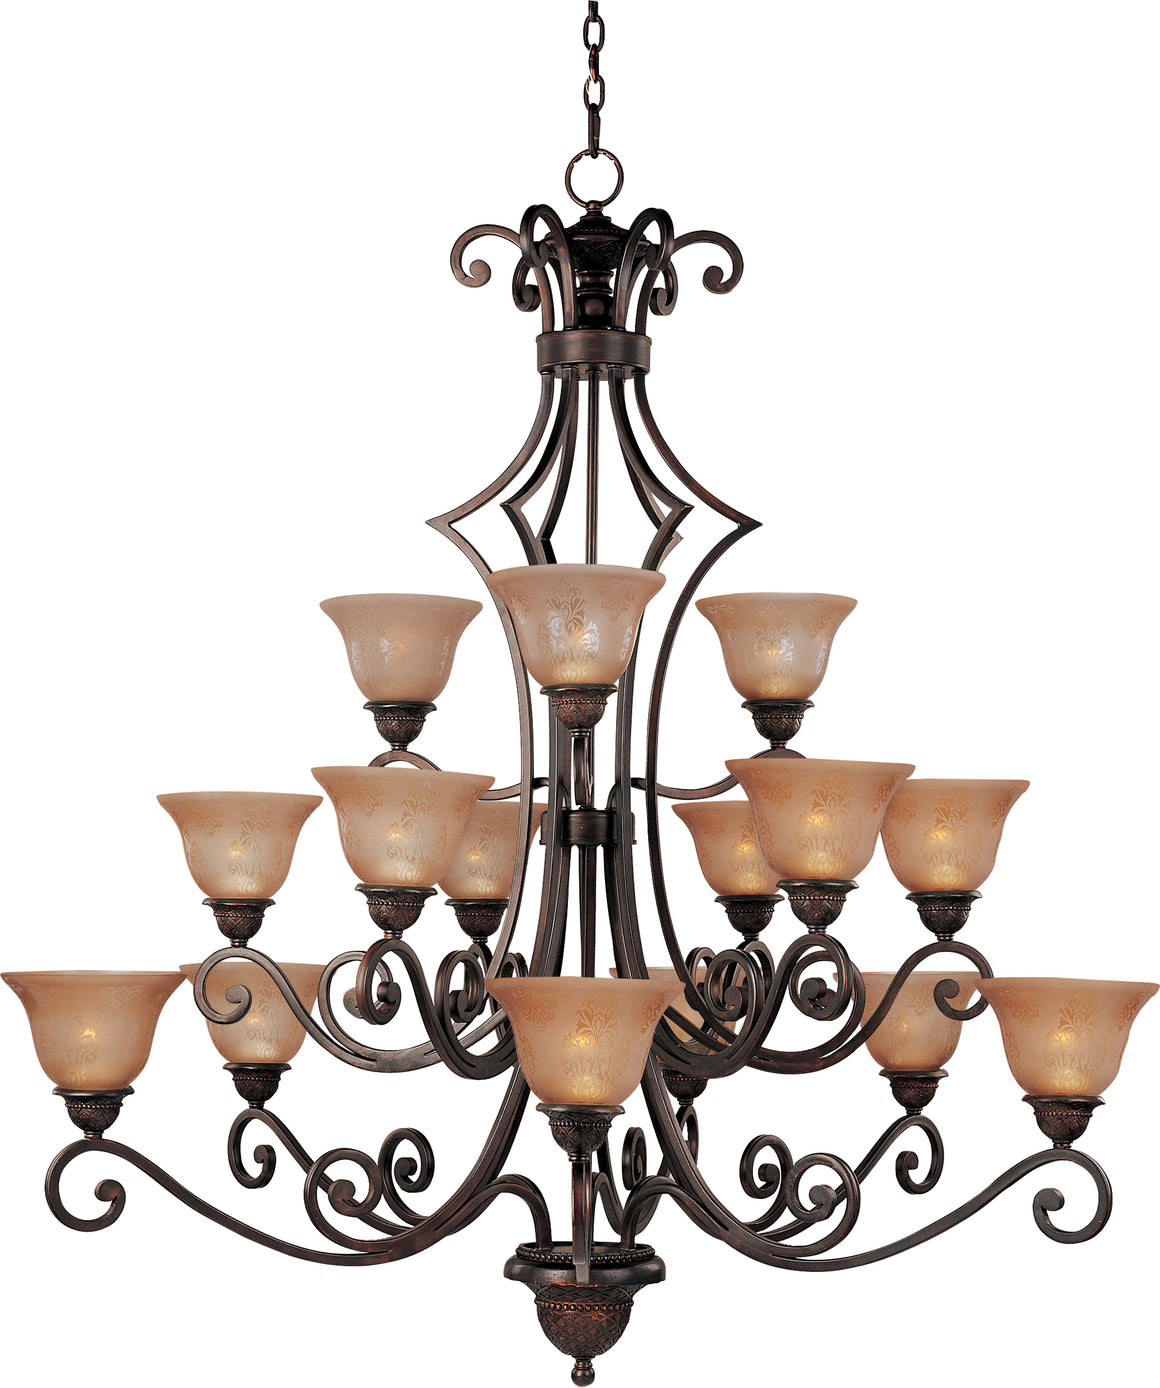 Symphony 15-Light Chandelier